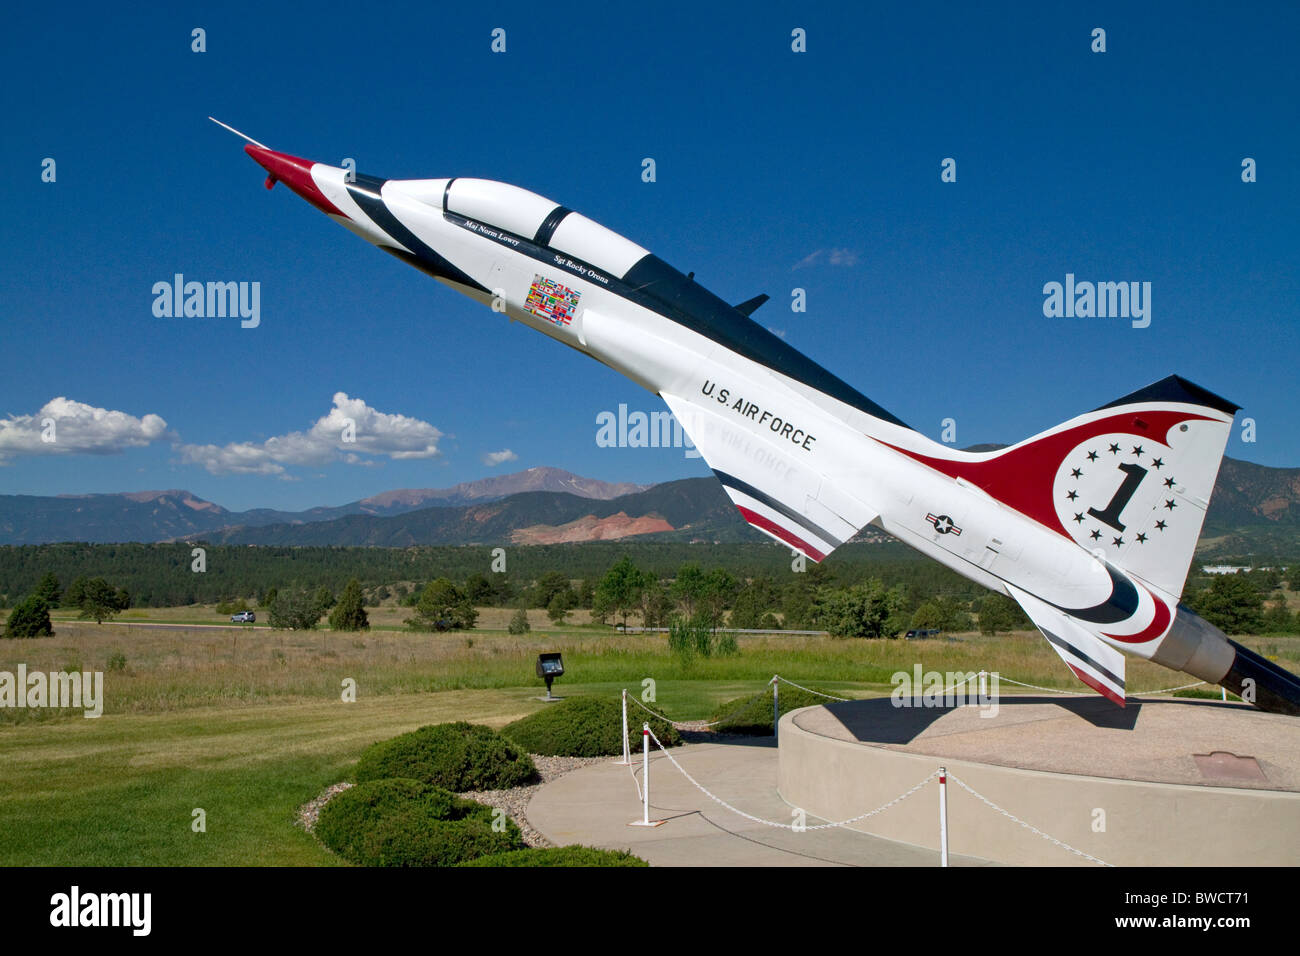 T-38 Talon American supersonic jet trainer on display at the Air Force Academy in Colorado Springs, Colorado, USA. - Stock Image